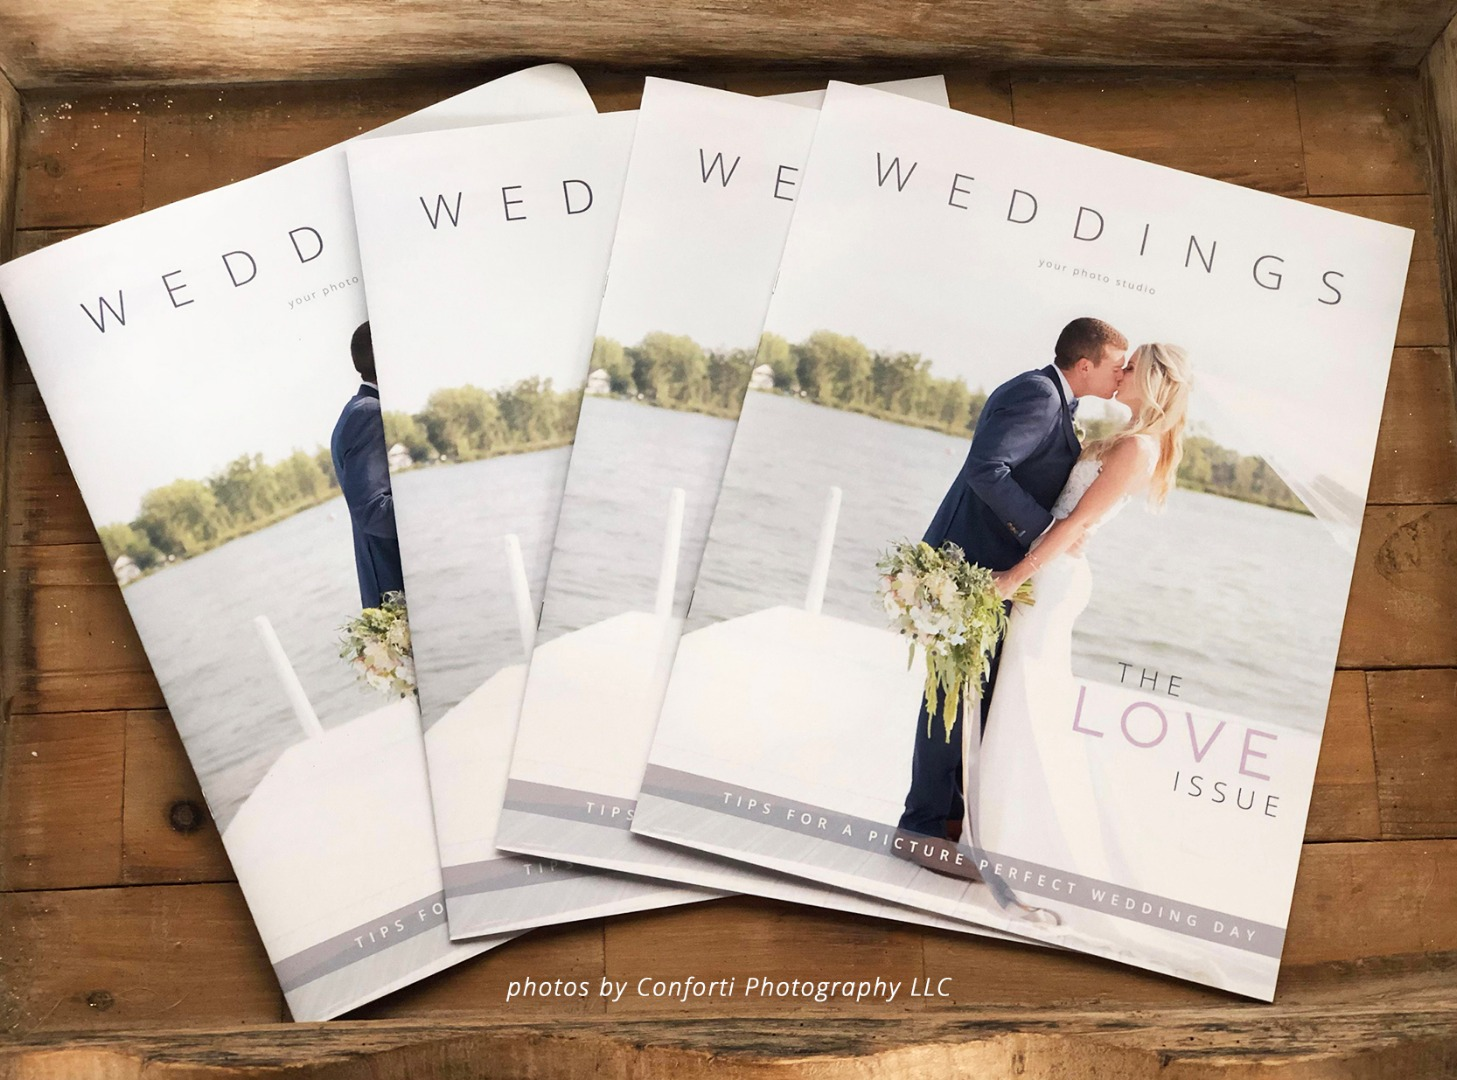 Wedding Welcome Guide Template the Love Issue